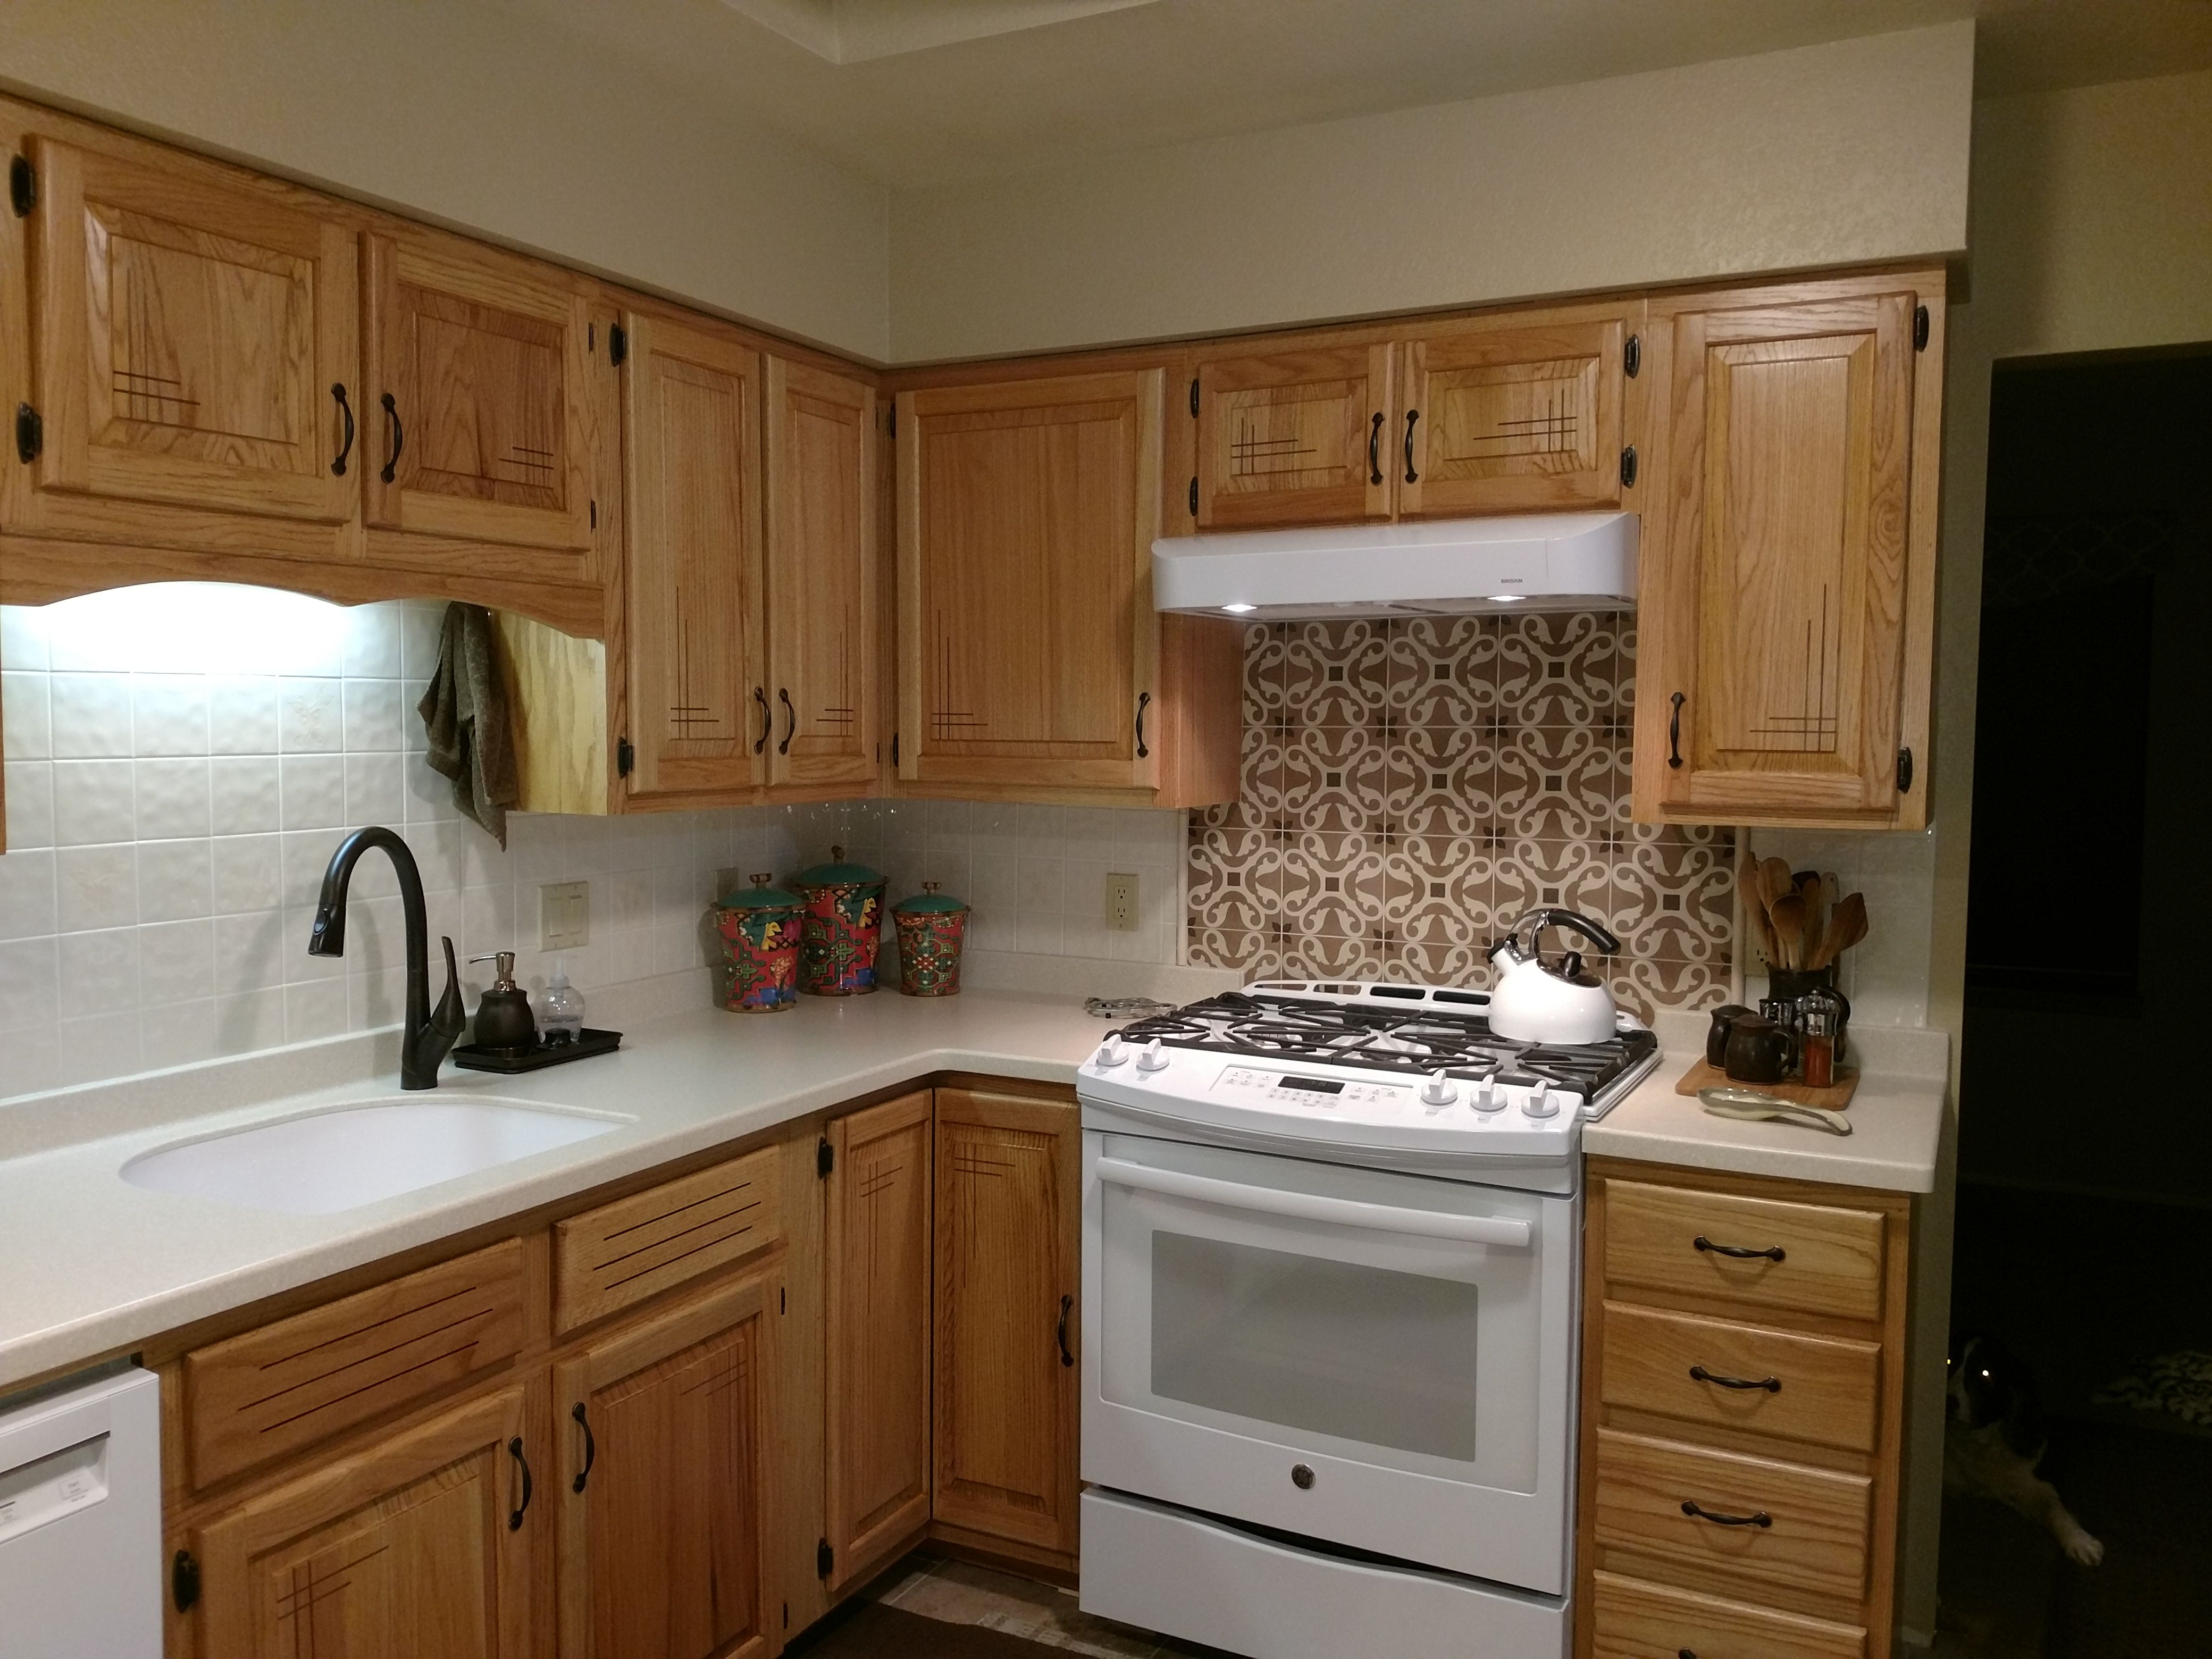 Finished Kitchen Cabinets With New Countertops It Was Great To Renew Reuse Existing Cabinets And Save Lots O New Countertops Finish Kitchen Cabinets Kitchen